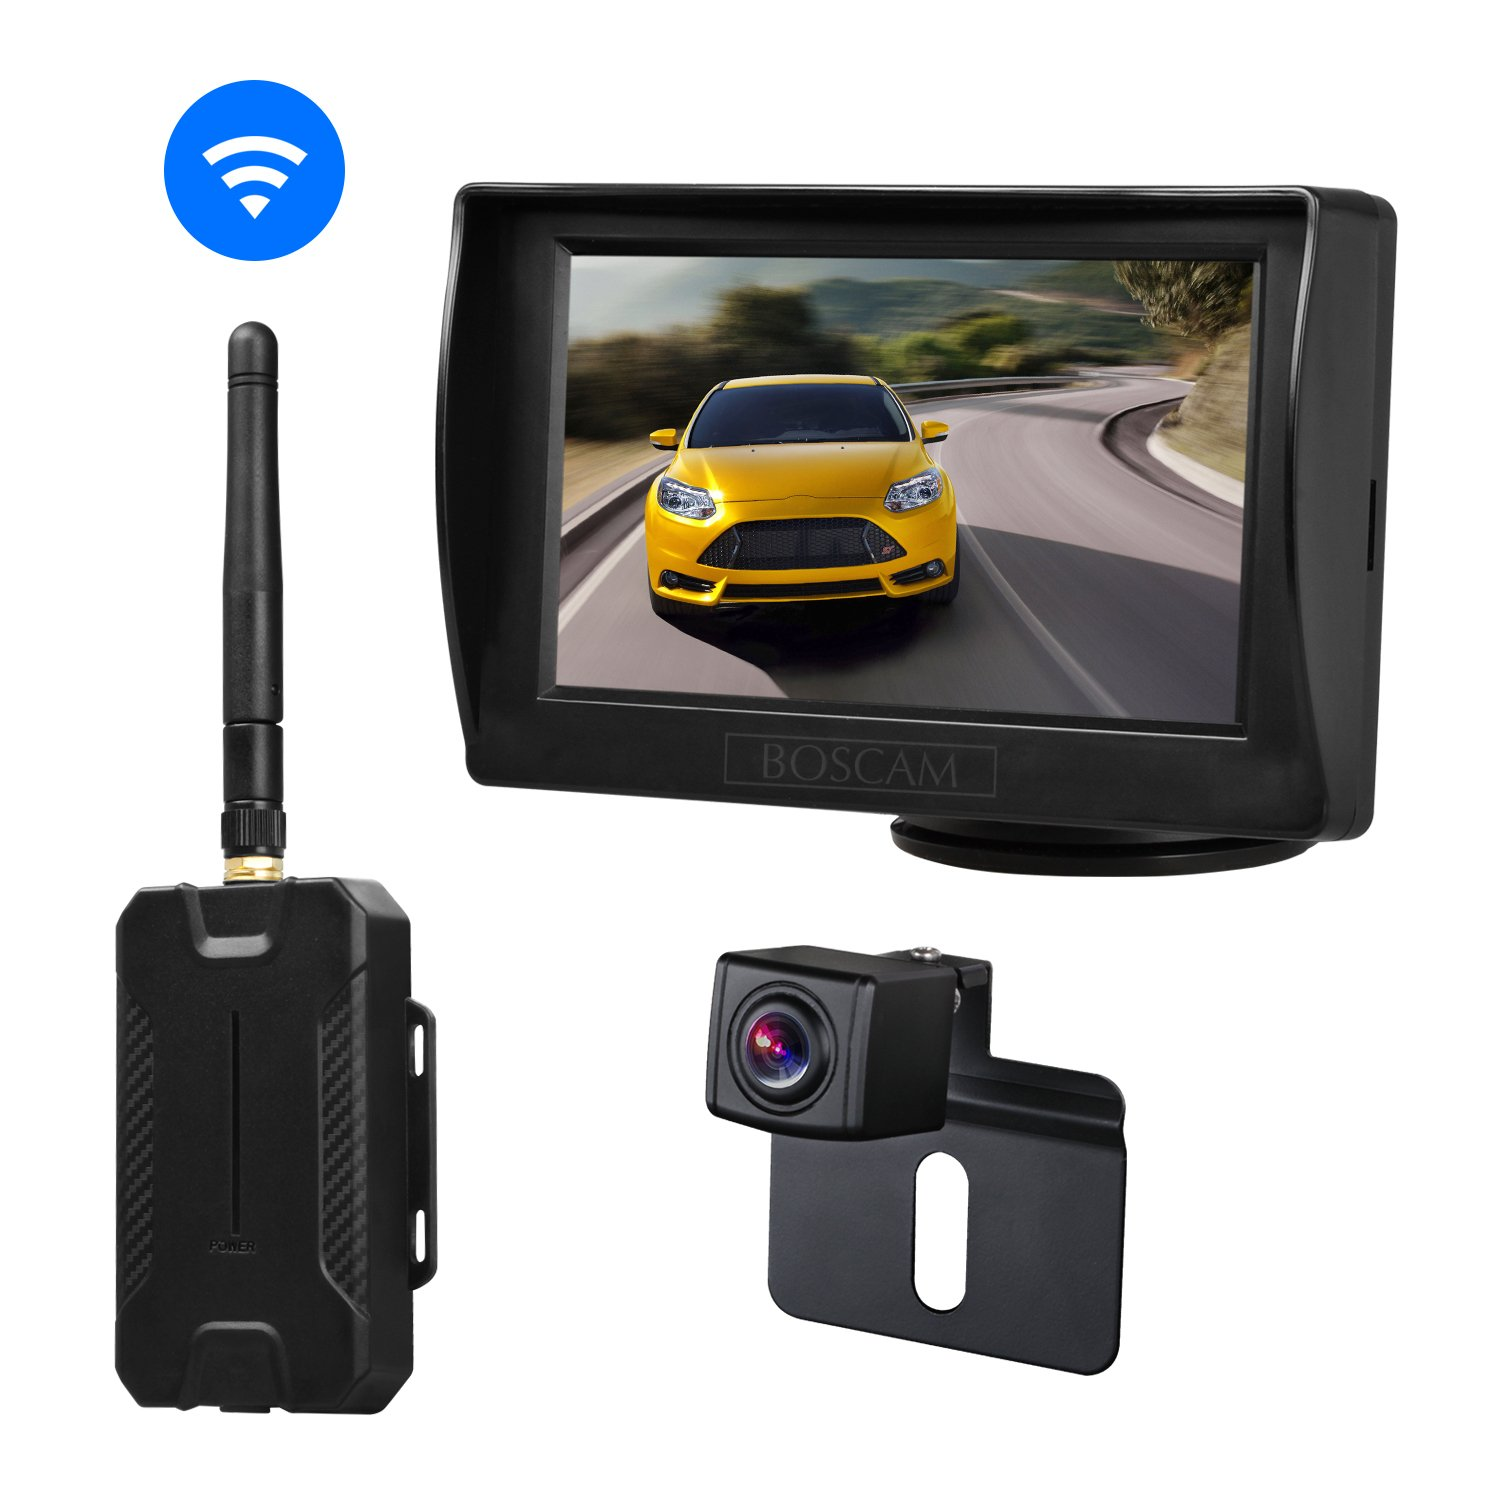 BOSCAM K1 Wireless Backup Camera and Monitor Kit, 4.3 Inches LCD Rear View Monitor + Waterproof Back up Car Camera with Super Night Vision for Cars,Vans,Trucks,RVs